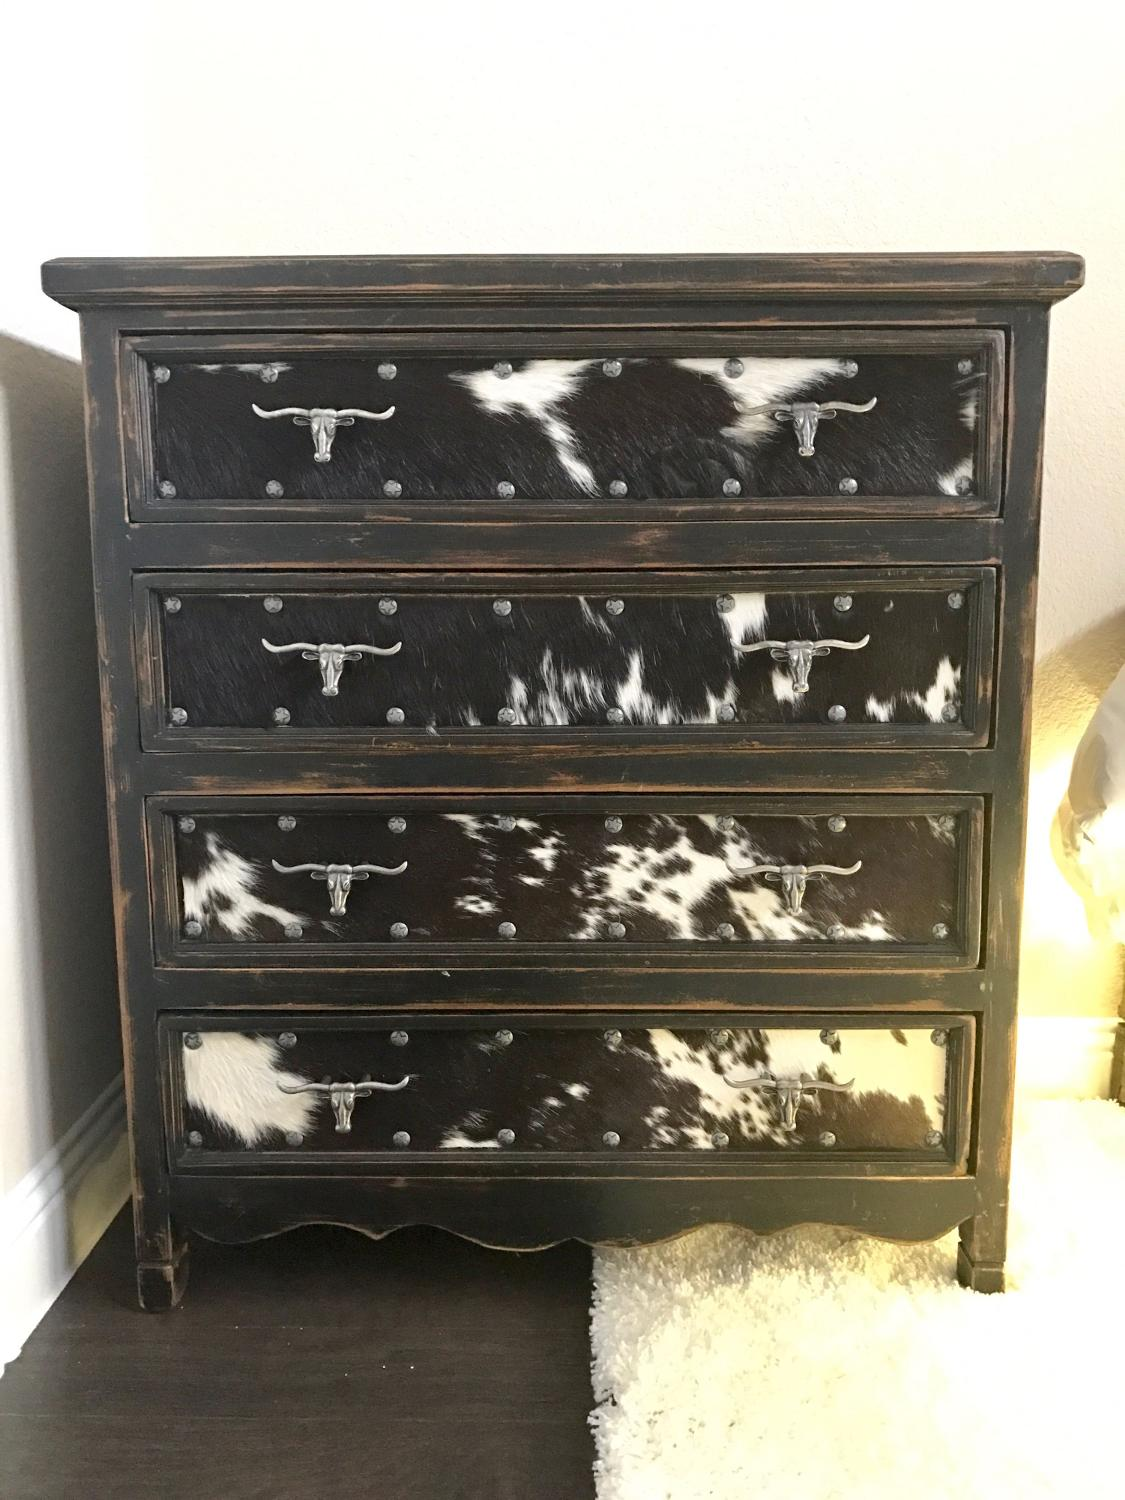 Find More Reduced Designer Chest Of Drawers With Cowhide Front For Sale At Up To 90 Off